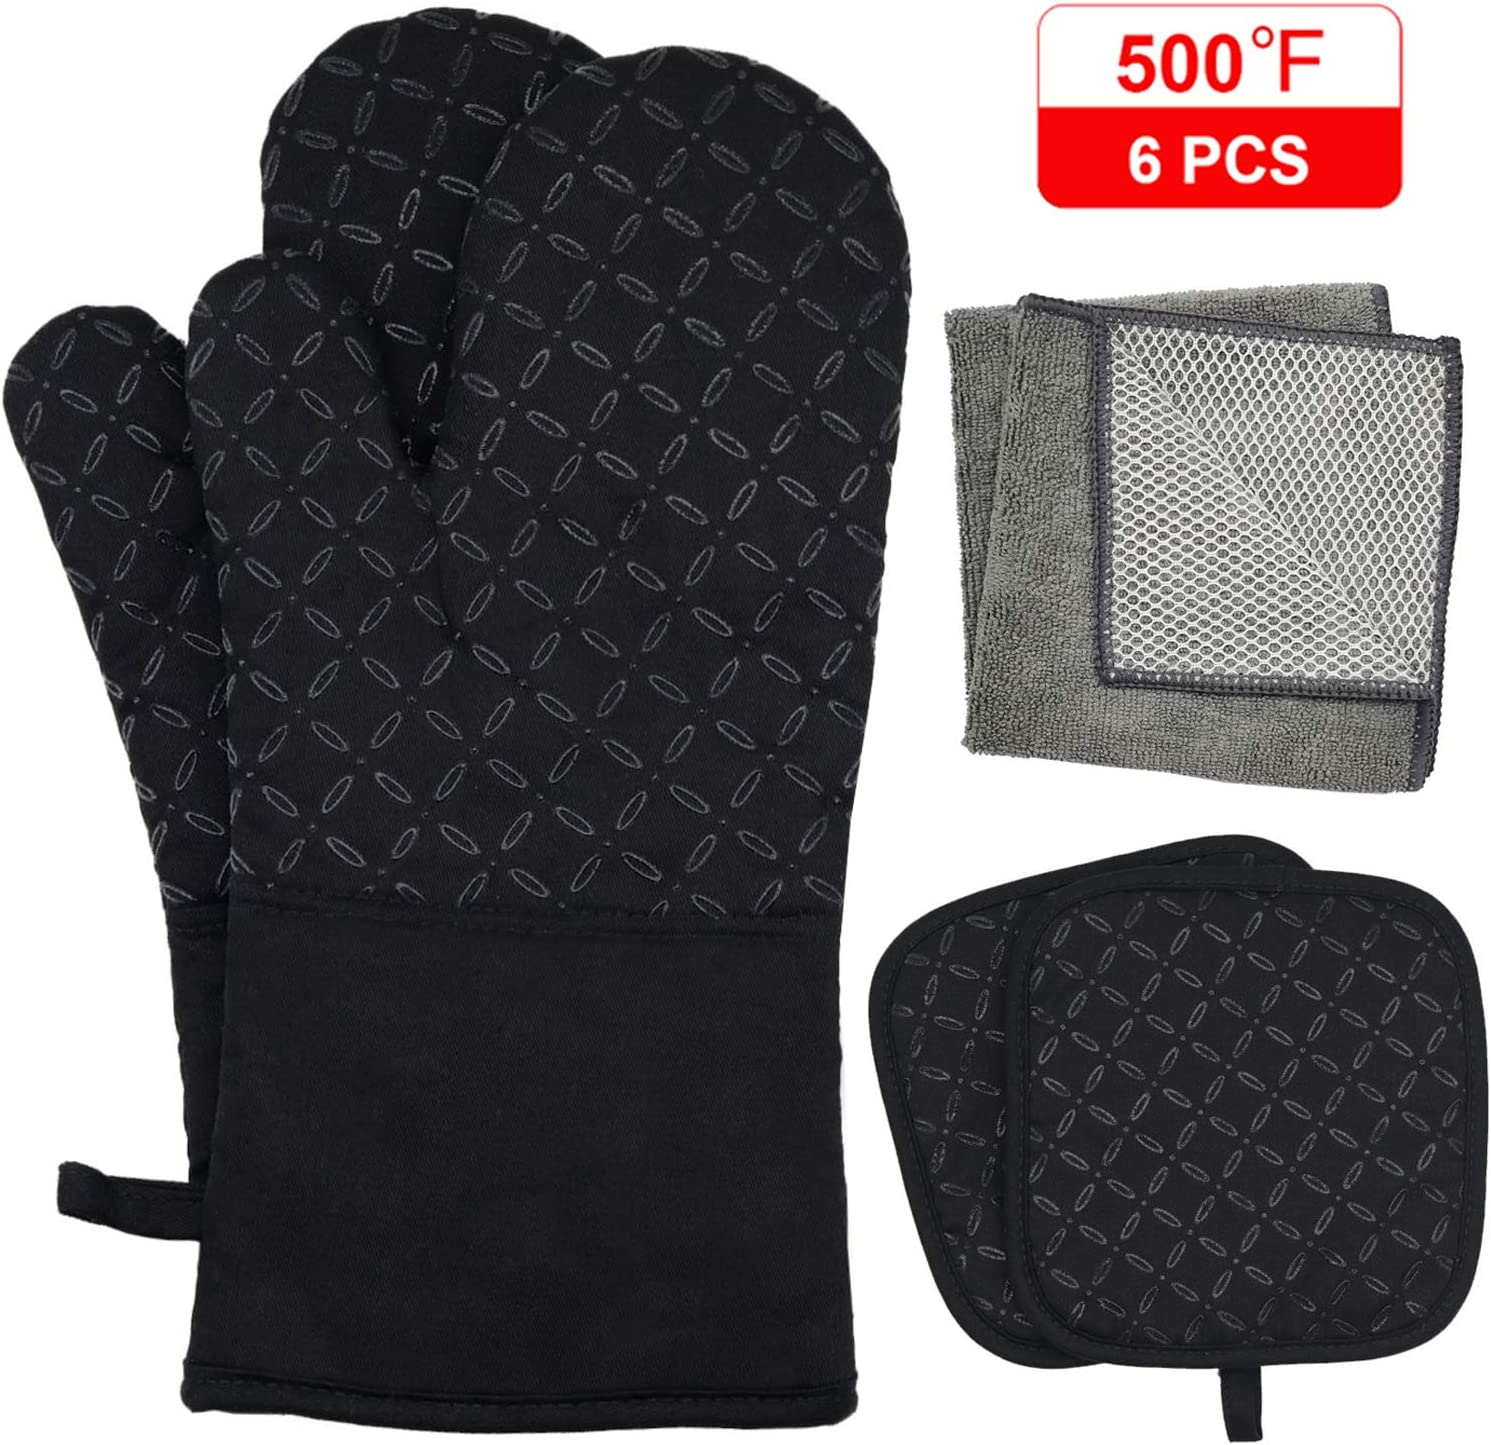 KEGOUU Oven Mitts and Pot Holders 6pcs Set, Kitchen Oven Glove High Heat Resistant 500 Degree Extra Long Oven Mitts and Potholder with Non-Slip Silicone Surface for Cooking (Black)